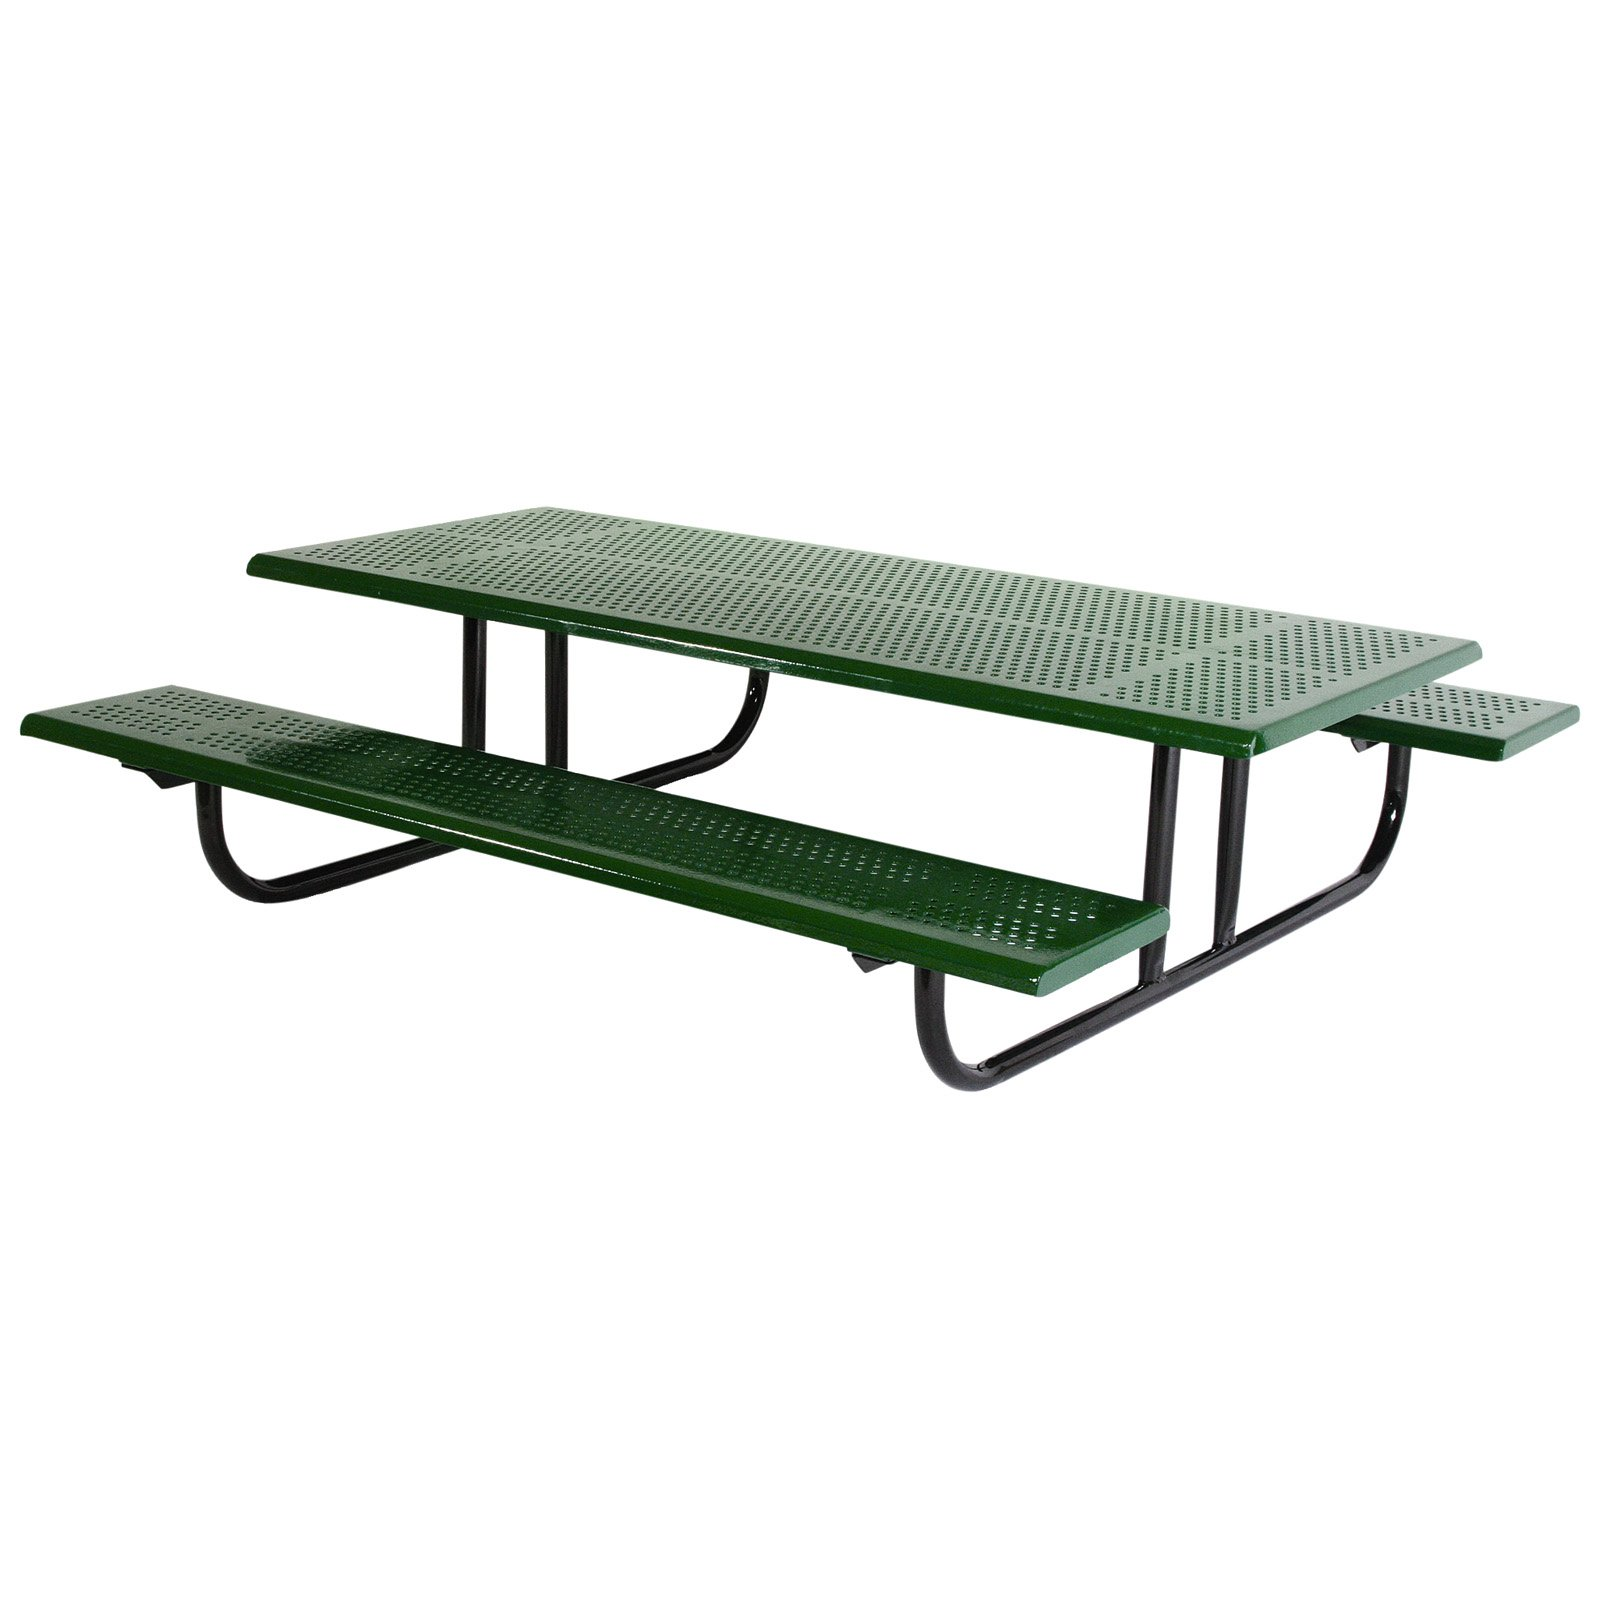 SportsPlay Early Years 6 ft. Rectangle Perforated Thermoplastic Steel Kids Picnic Table